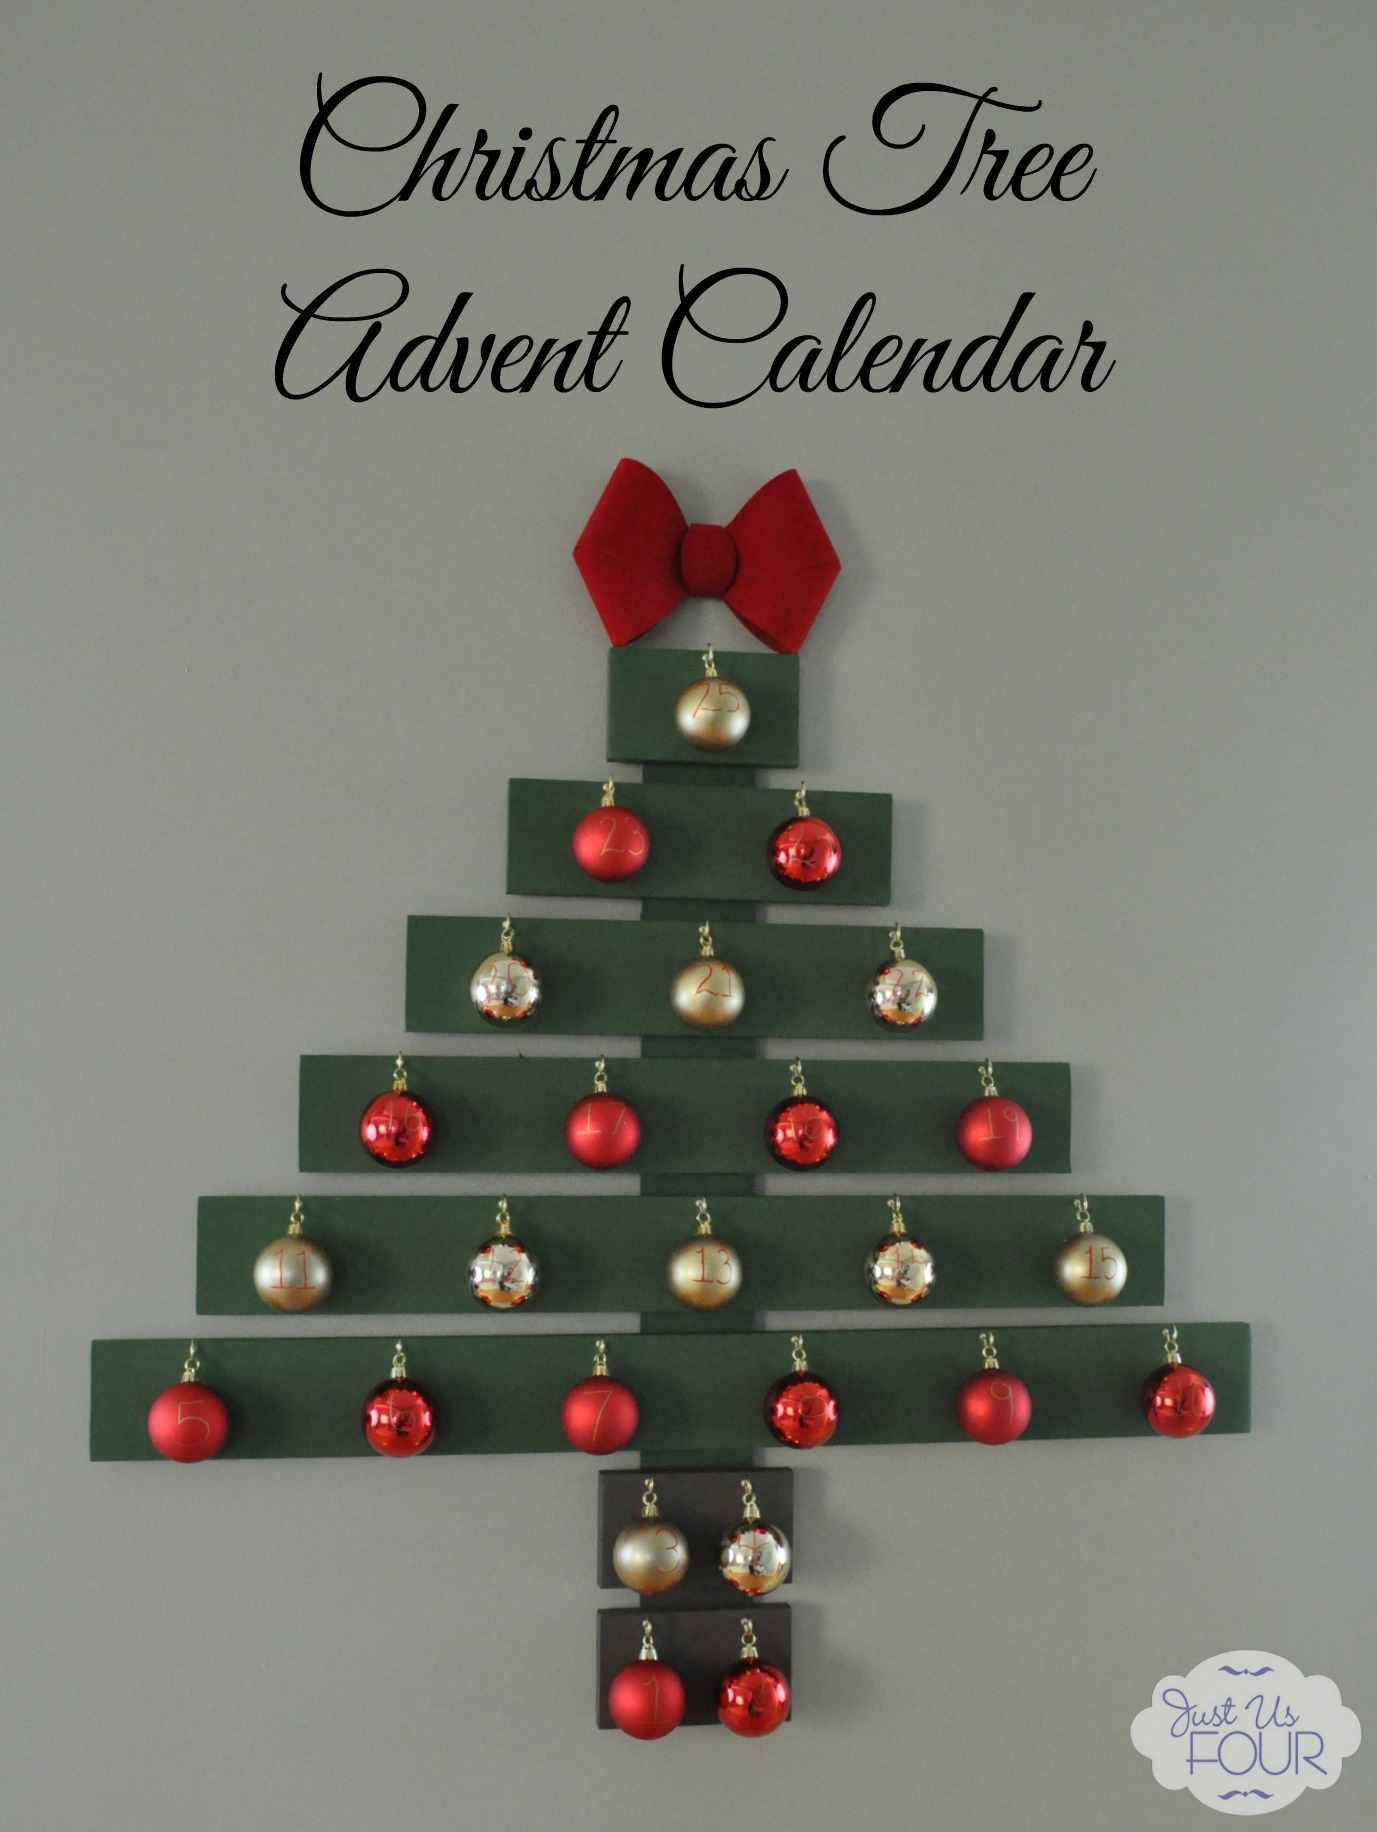 Christmas tree advent calendar my suburban kitchen How to build a wooden advent calendar